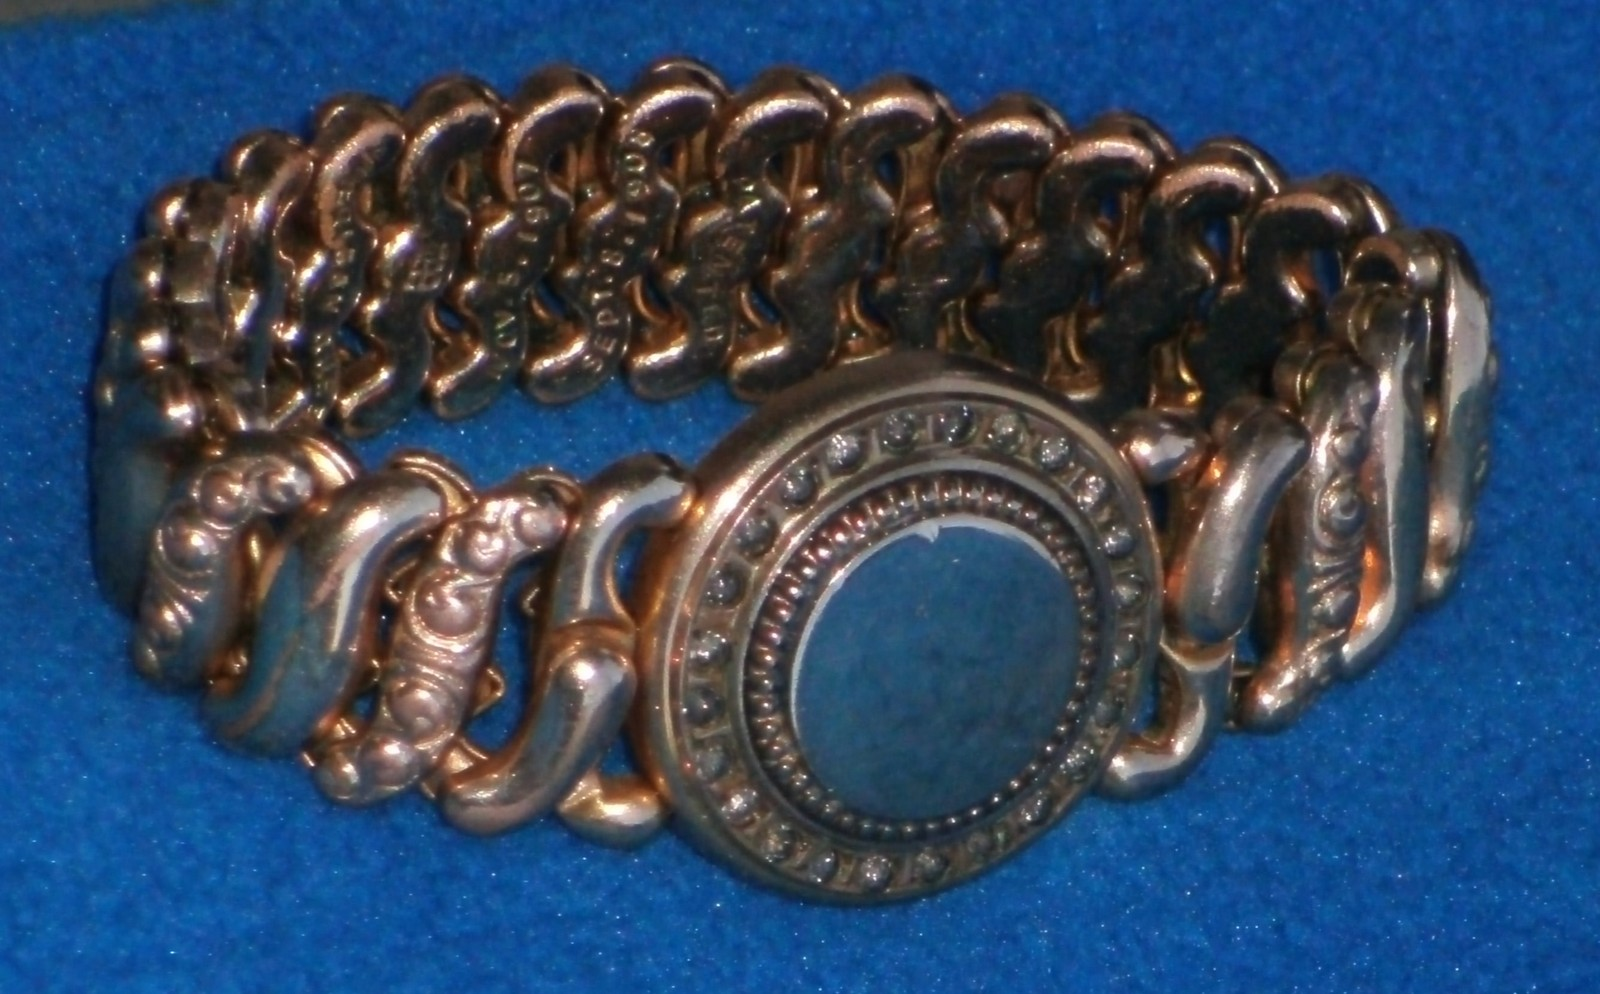 c 1907 American Queen GF245 GOLD Filled ENGRAVEABLE Sweetheart Bracelet by P K